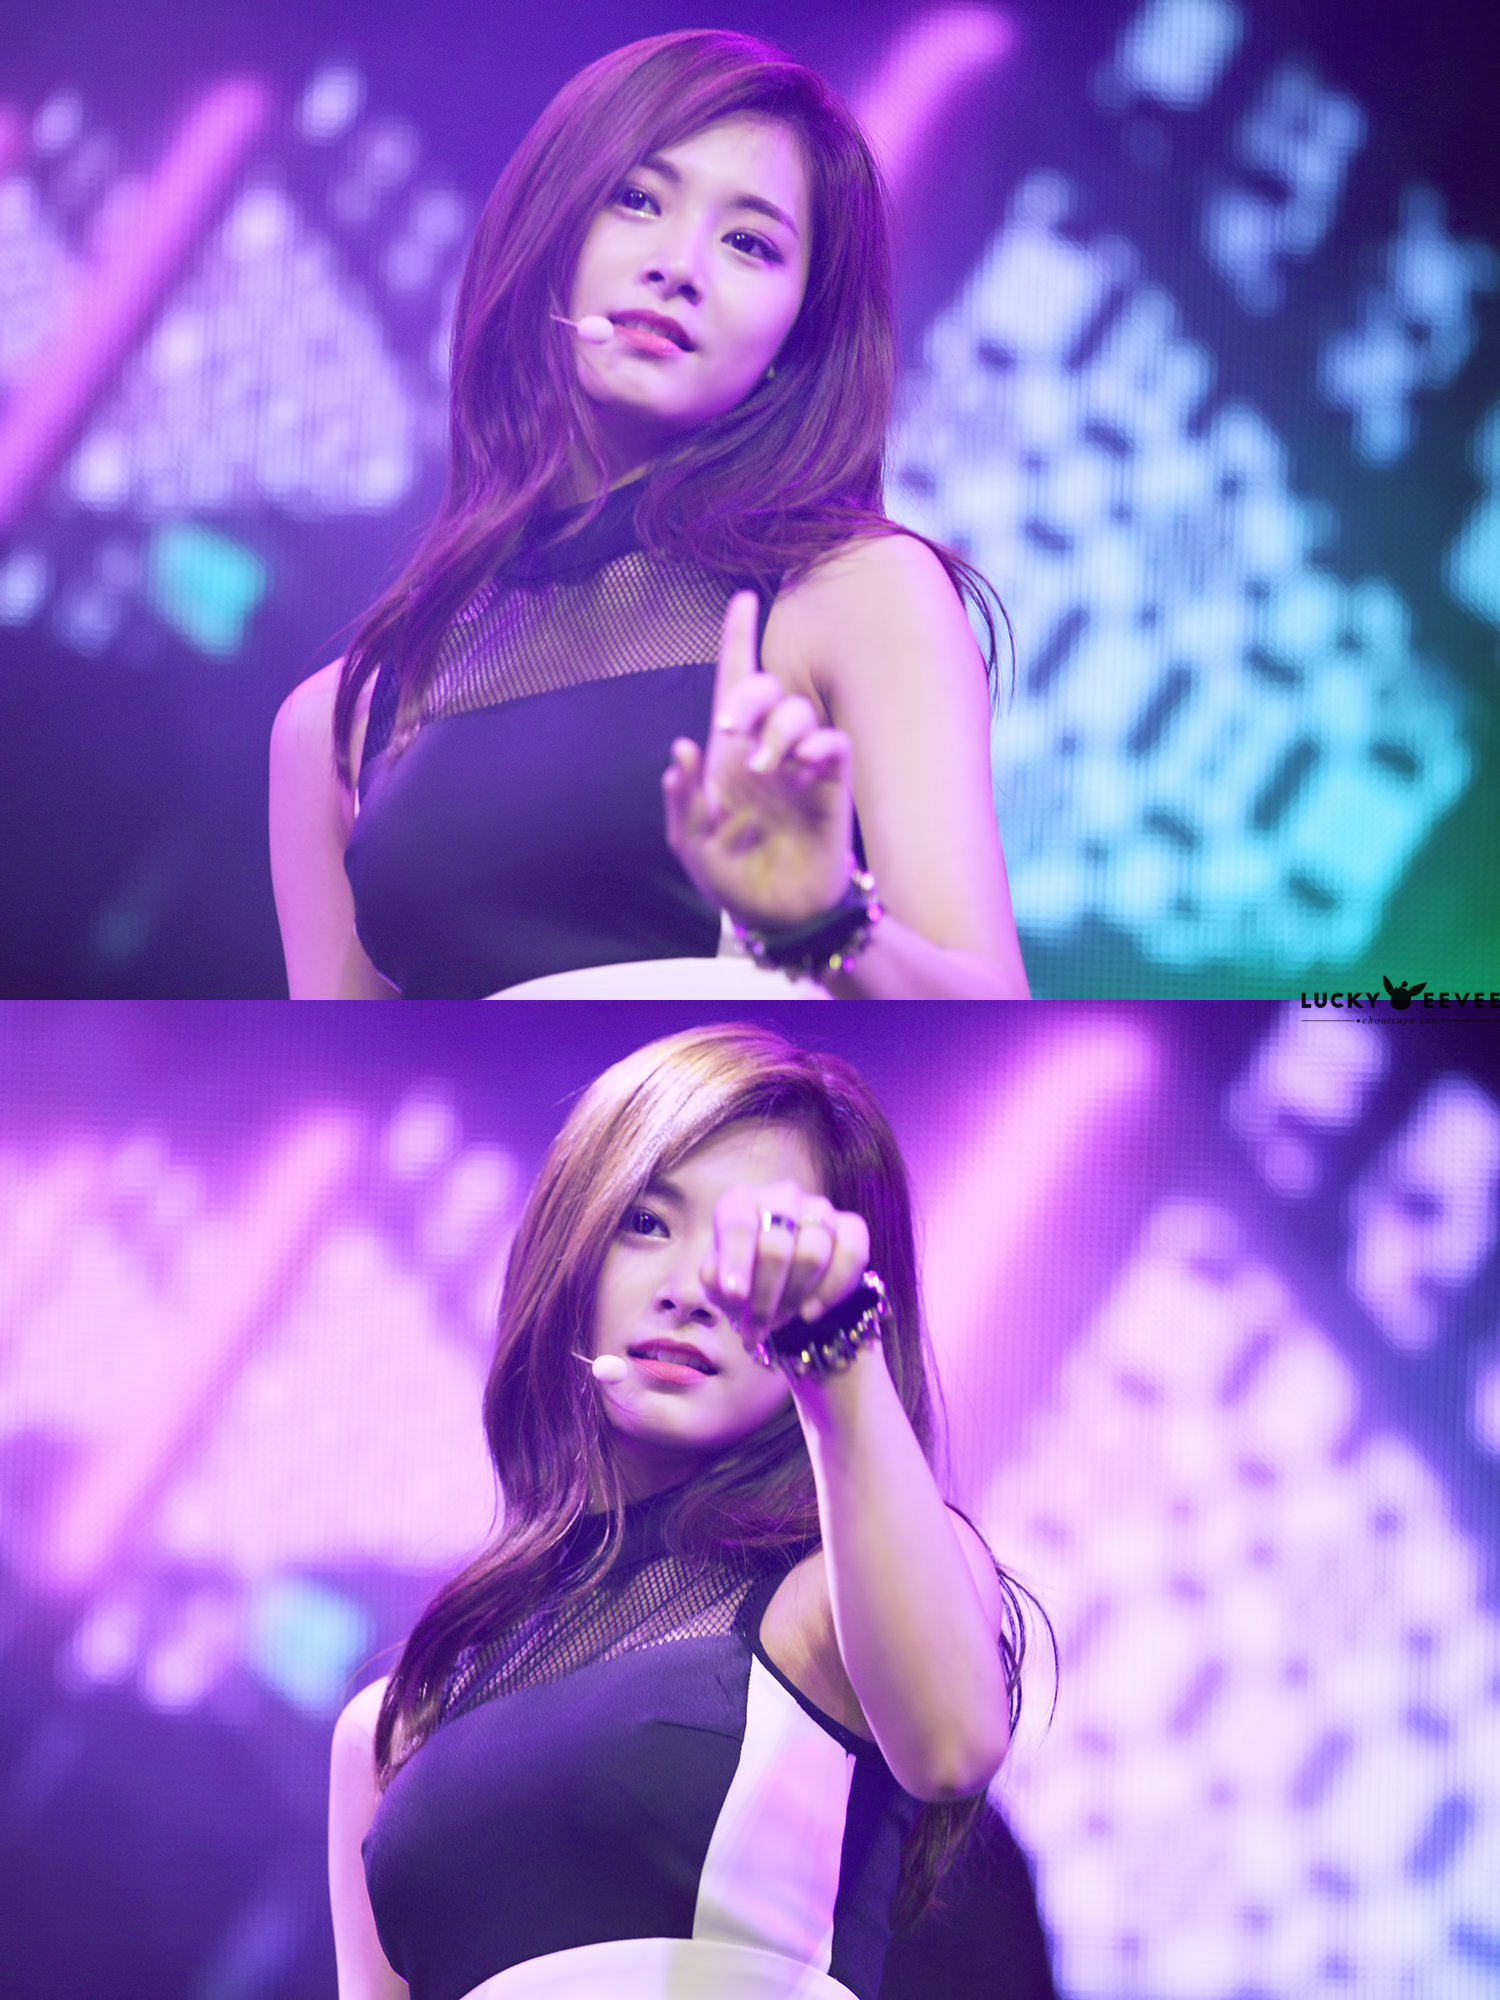 Tzuyu Android Iphone Wallpaper 136464 Asiachan Kpop Image Board